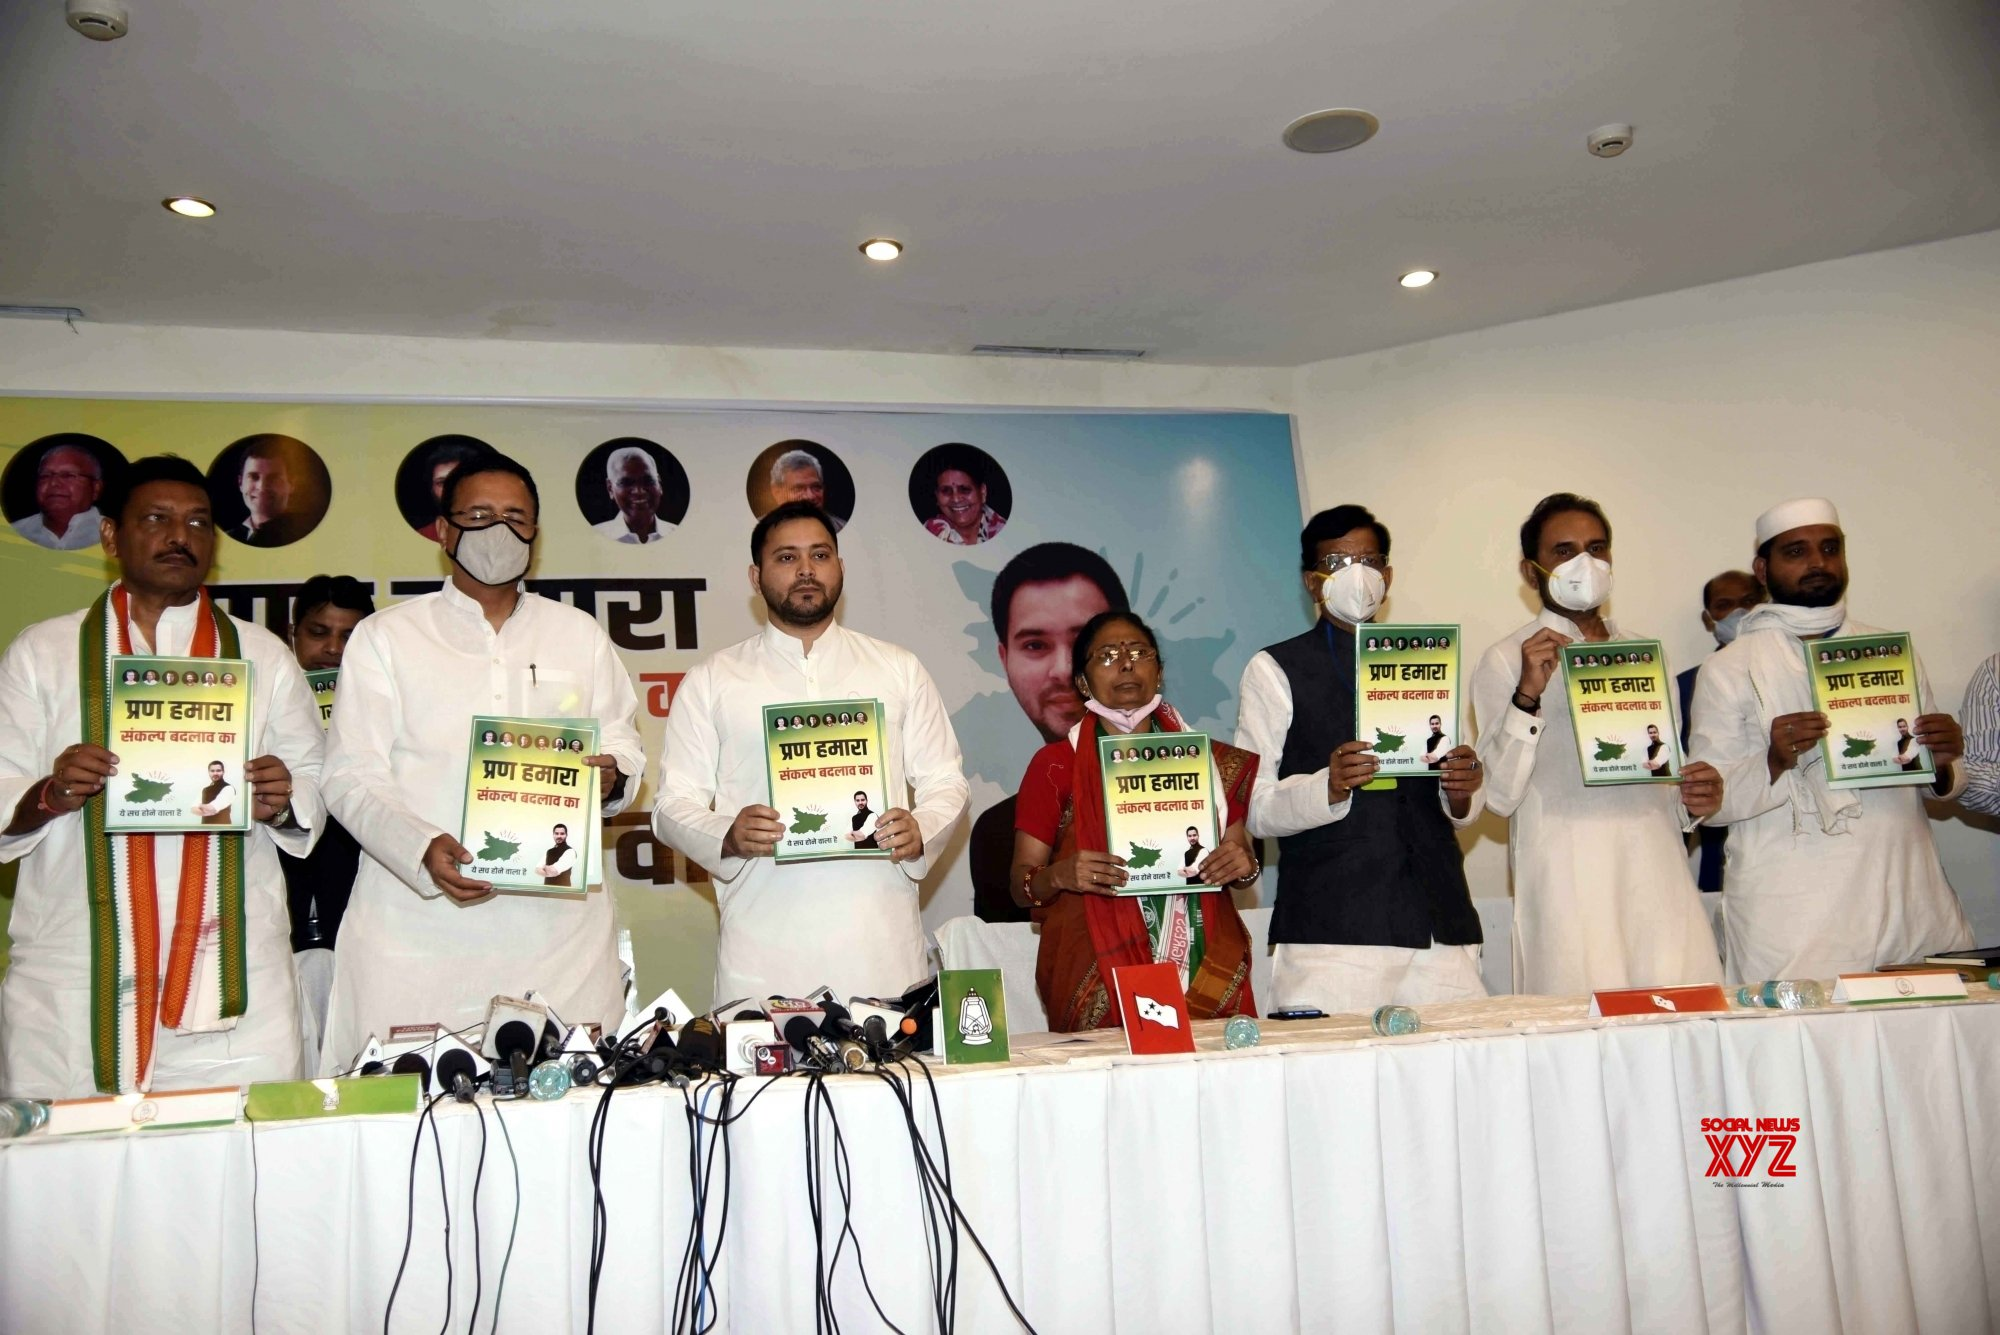 Patna: Mahagathbandhan releases election manifesto ahead of Bihar polls 2020 #Gallery